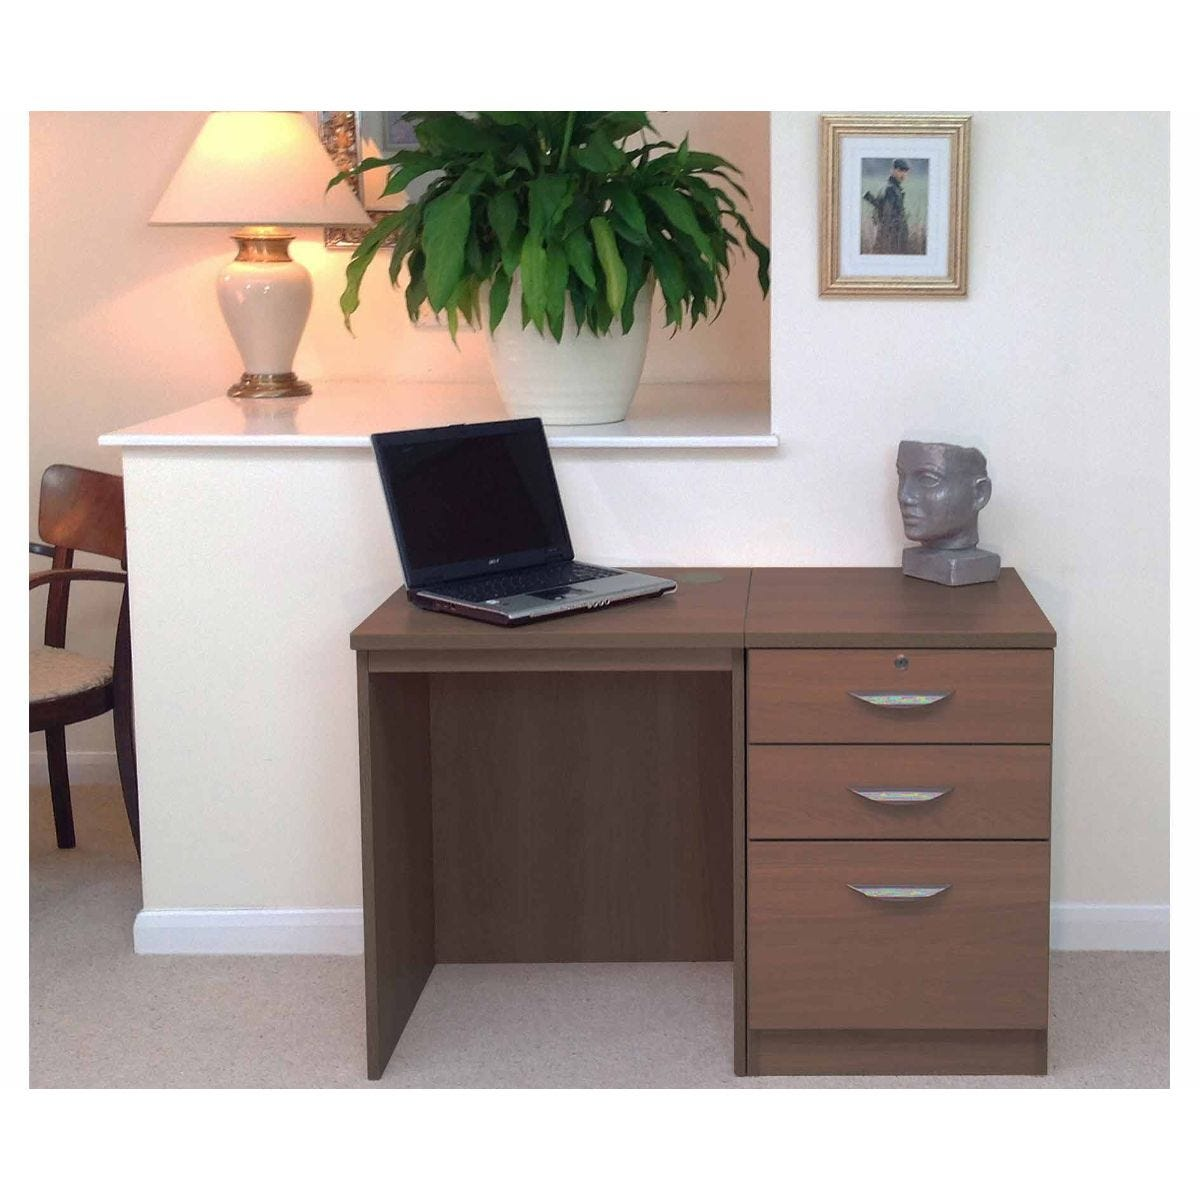 R White Home Office Desk Set with Drawers, Teak